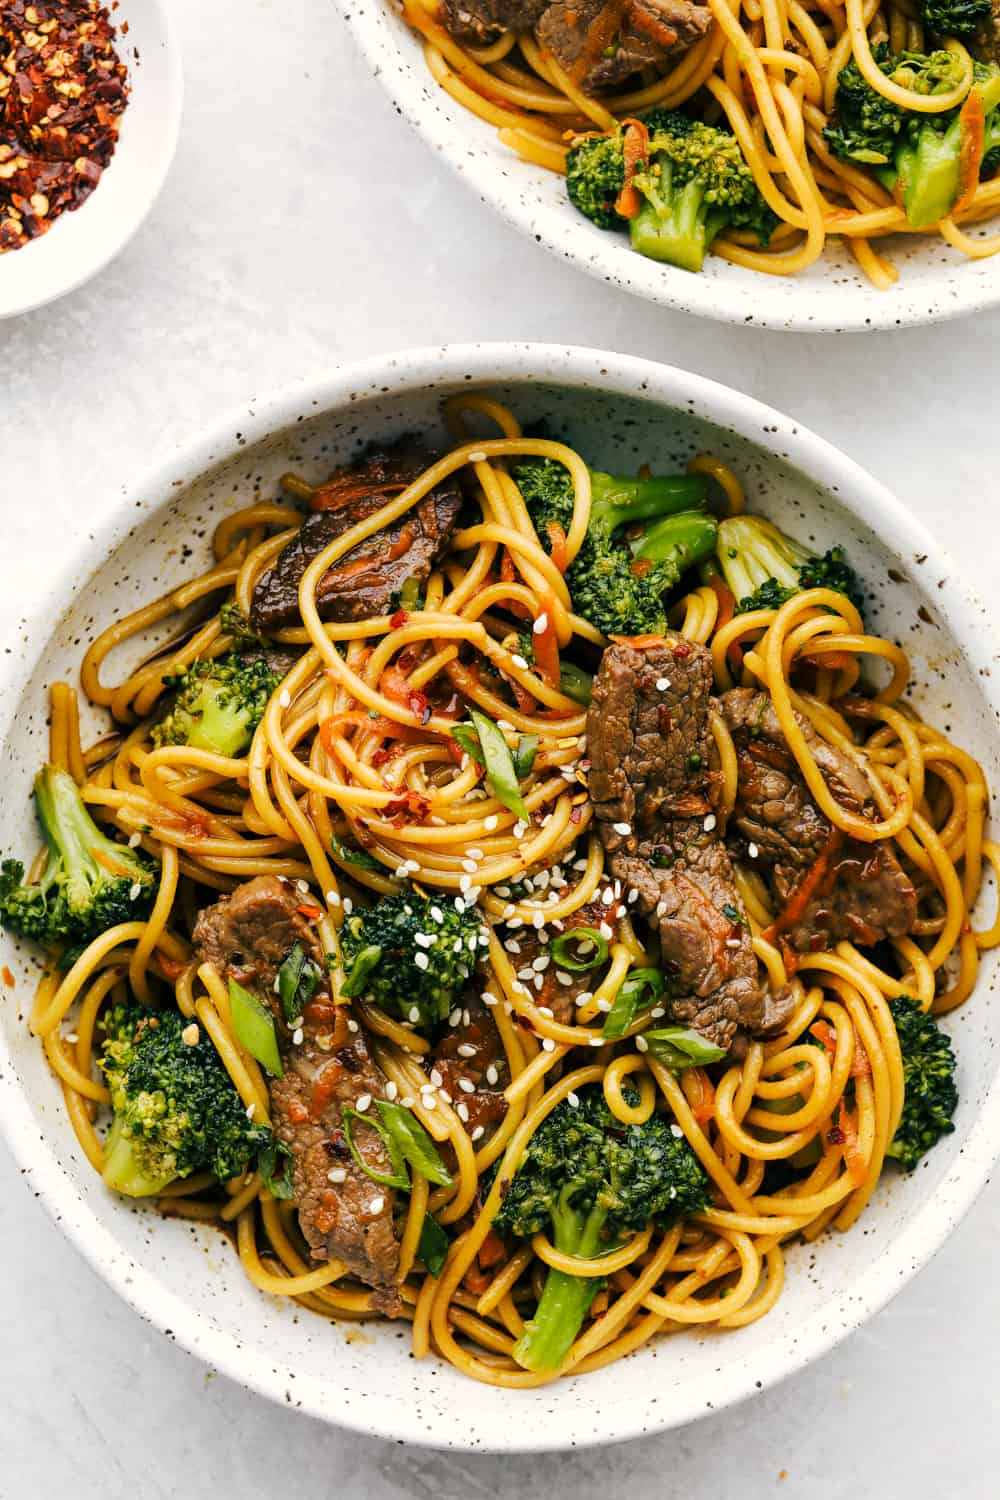 Beef and broccoli lo mein in a bowl.